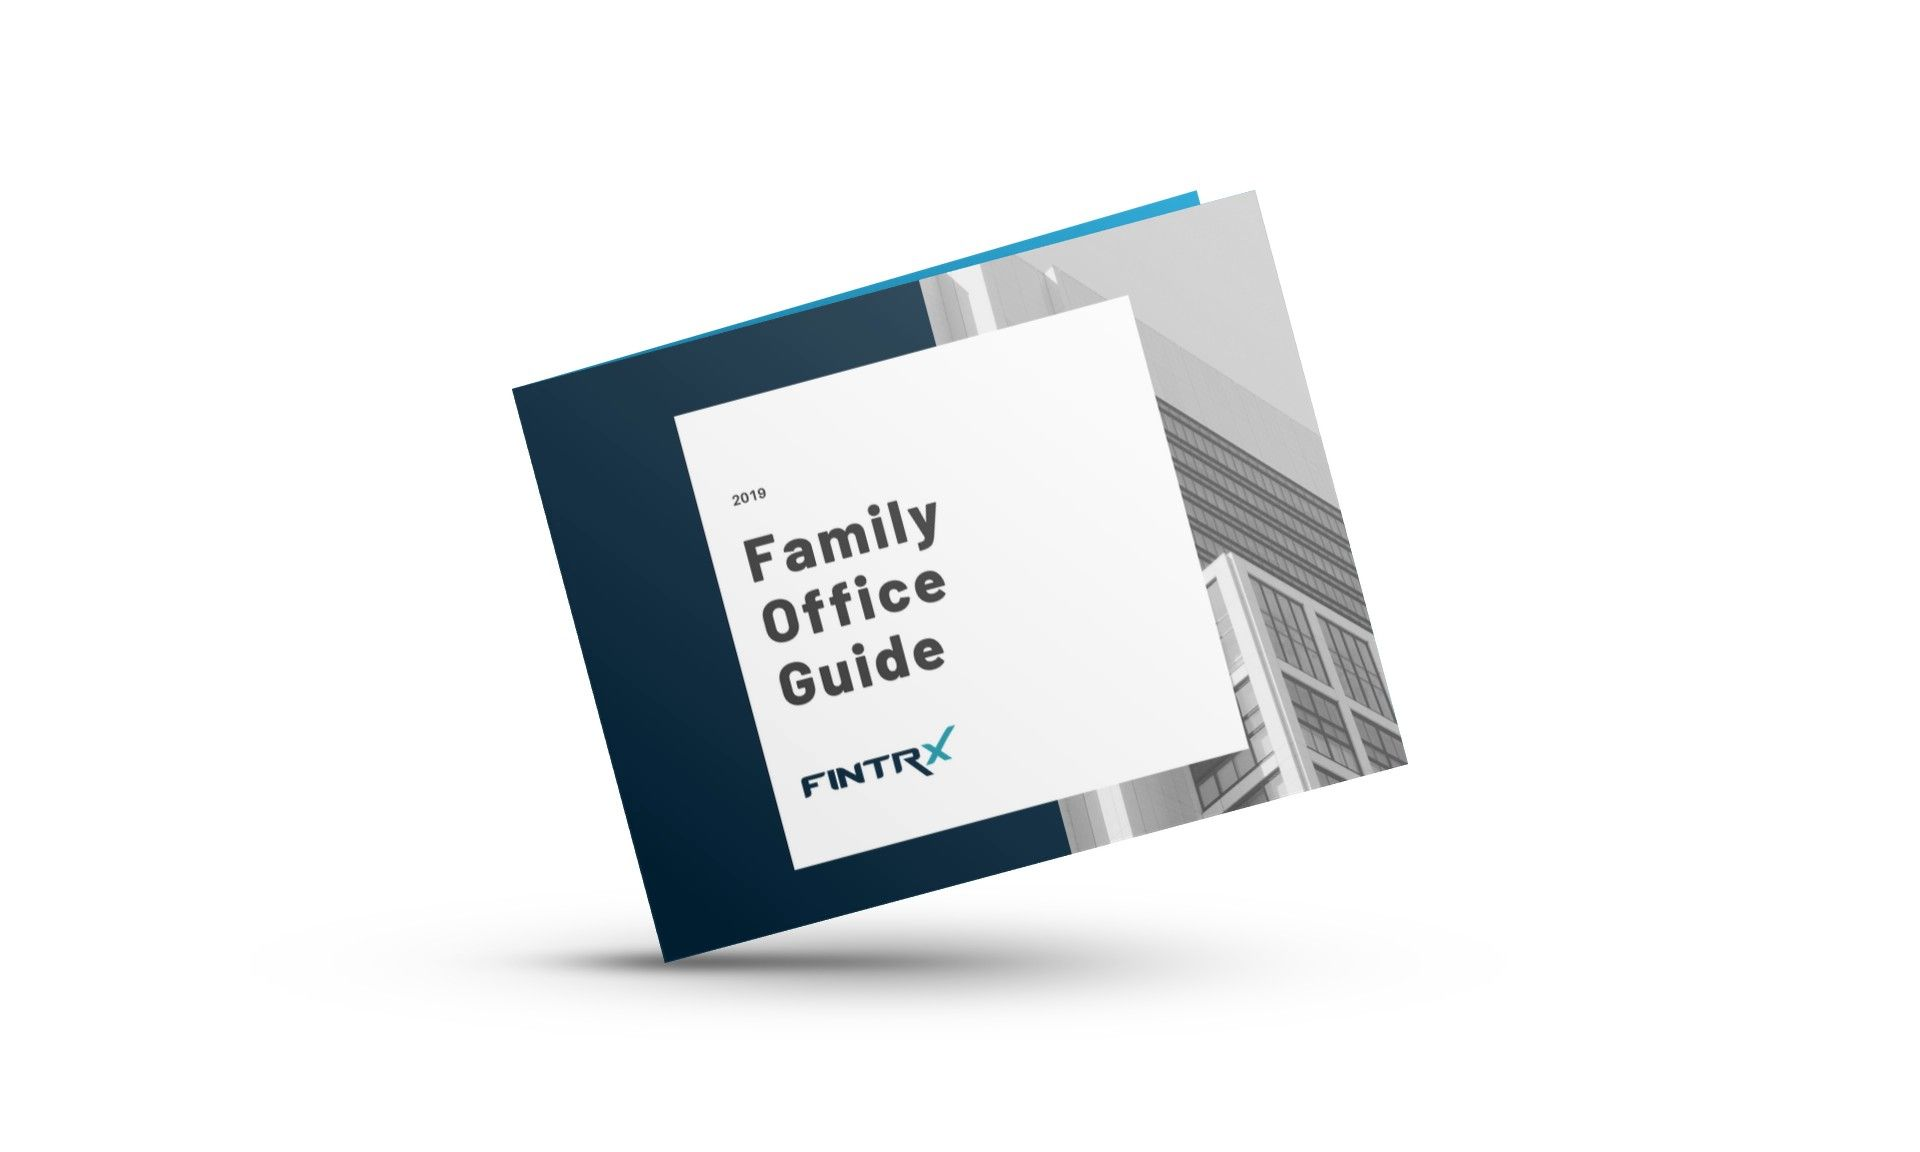 fintrx family office guide 2019